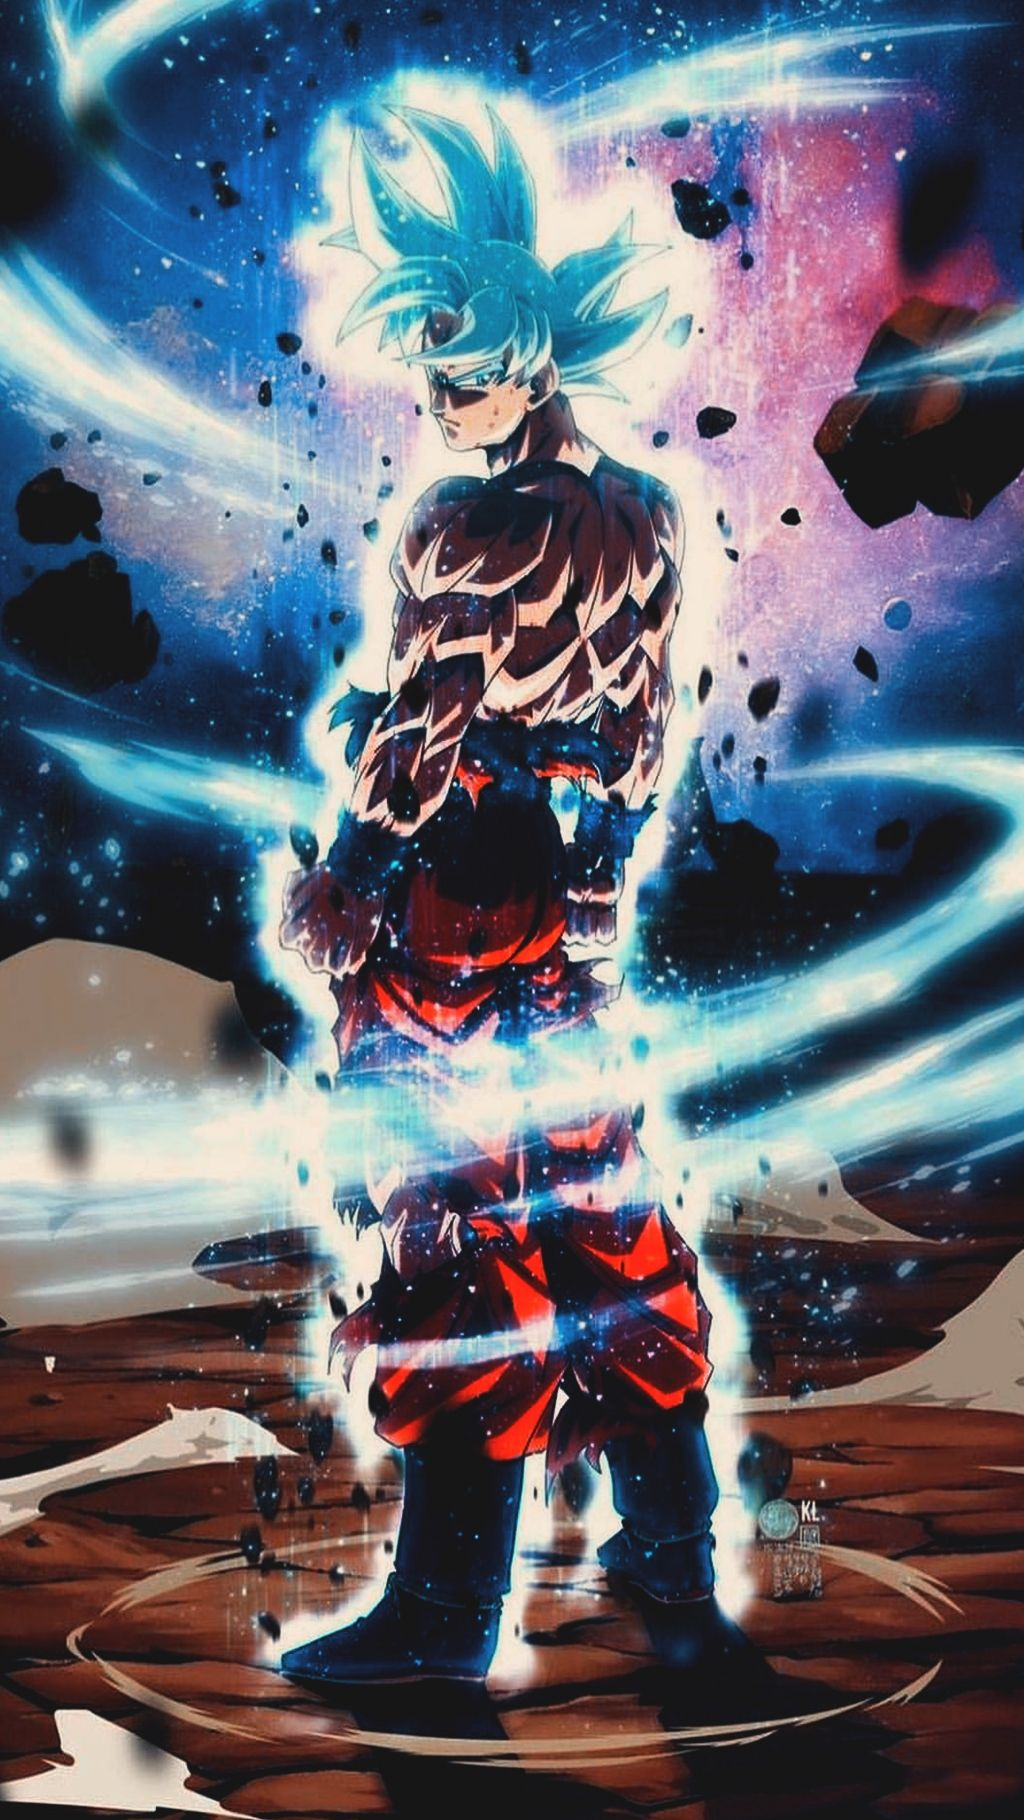 20 4k Wallpapers Of Dbz And Super For Phones In 2020 Anime Dragon Ball Super Dragon Ball Goku Goku Art